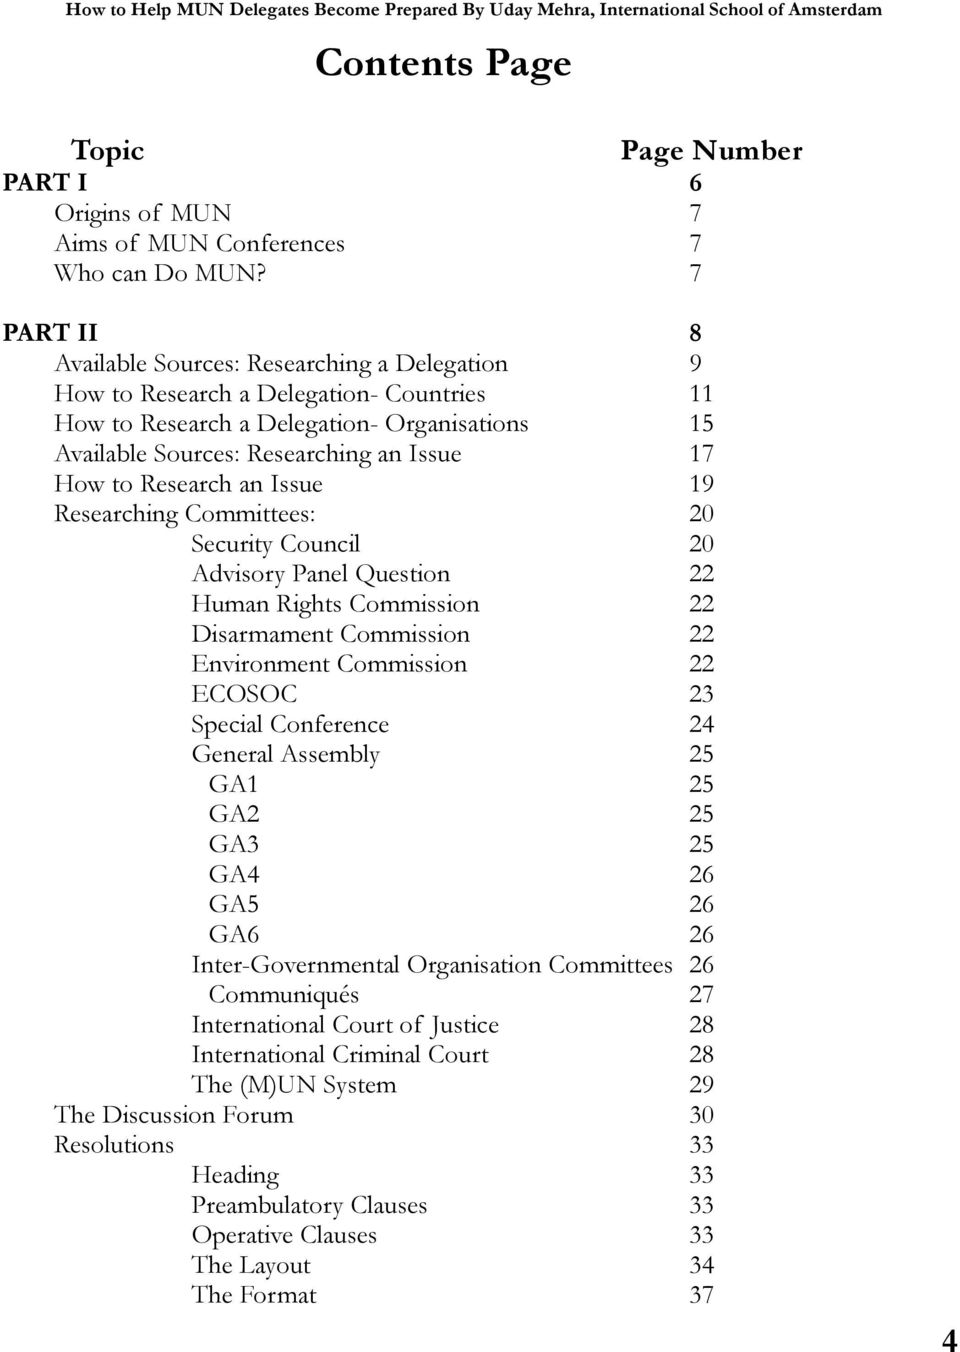 Research an Issue 19 Researching Committees: 20 Security Council 20 Advisory Panel Question 22 Human Rights Commission 22 Disarmament Commission 22 Environment Commission 22 ECOSOC 23 Special